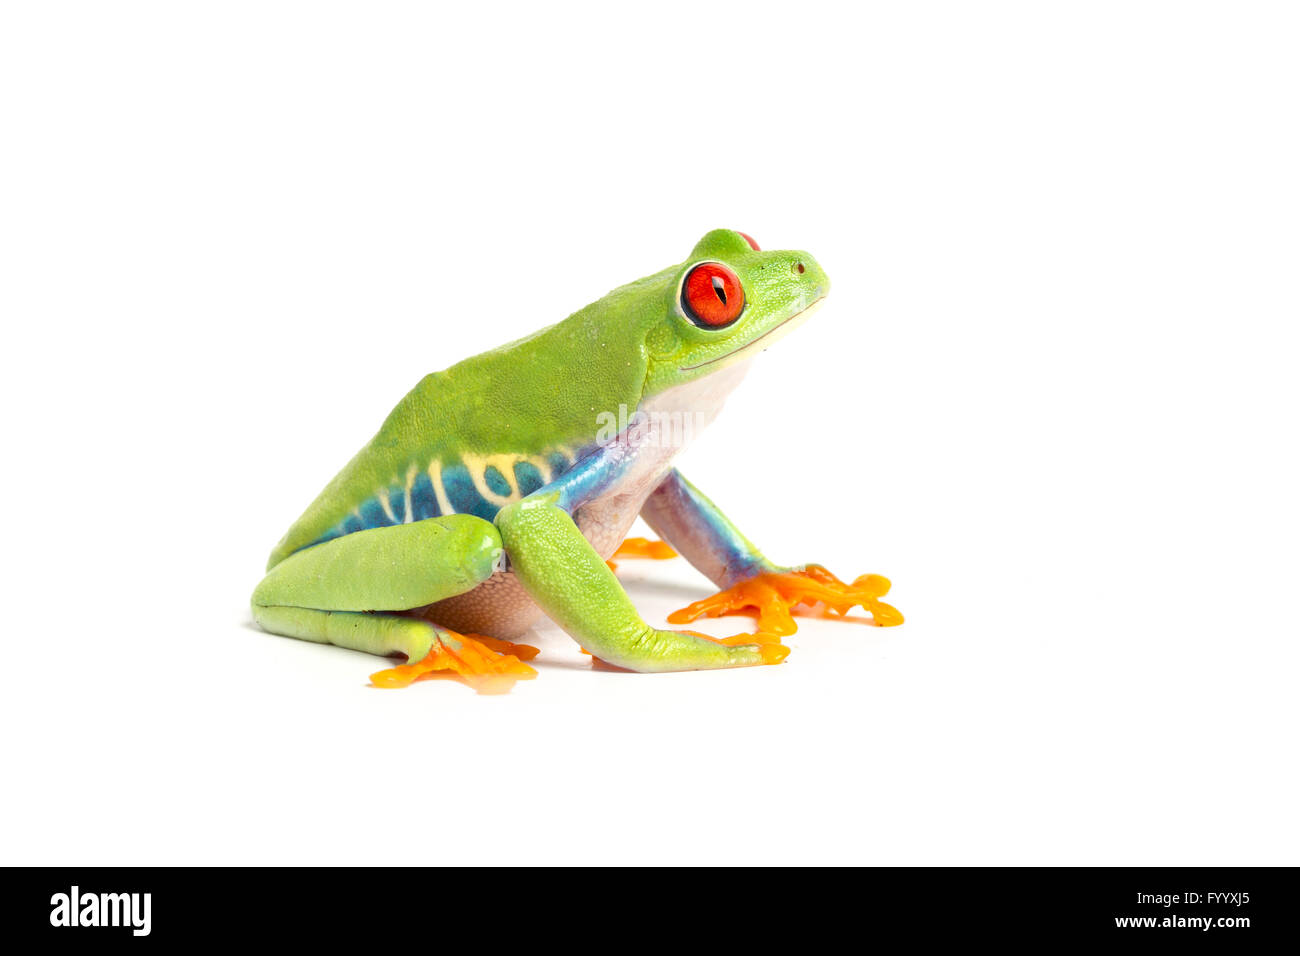 Red-eyed Leaf Frog, Agalychnis callidryas, Central America, a member of the Hylidae - Stock Image